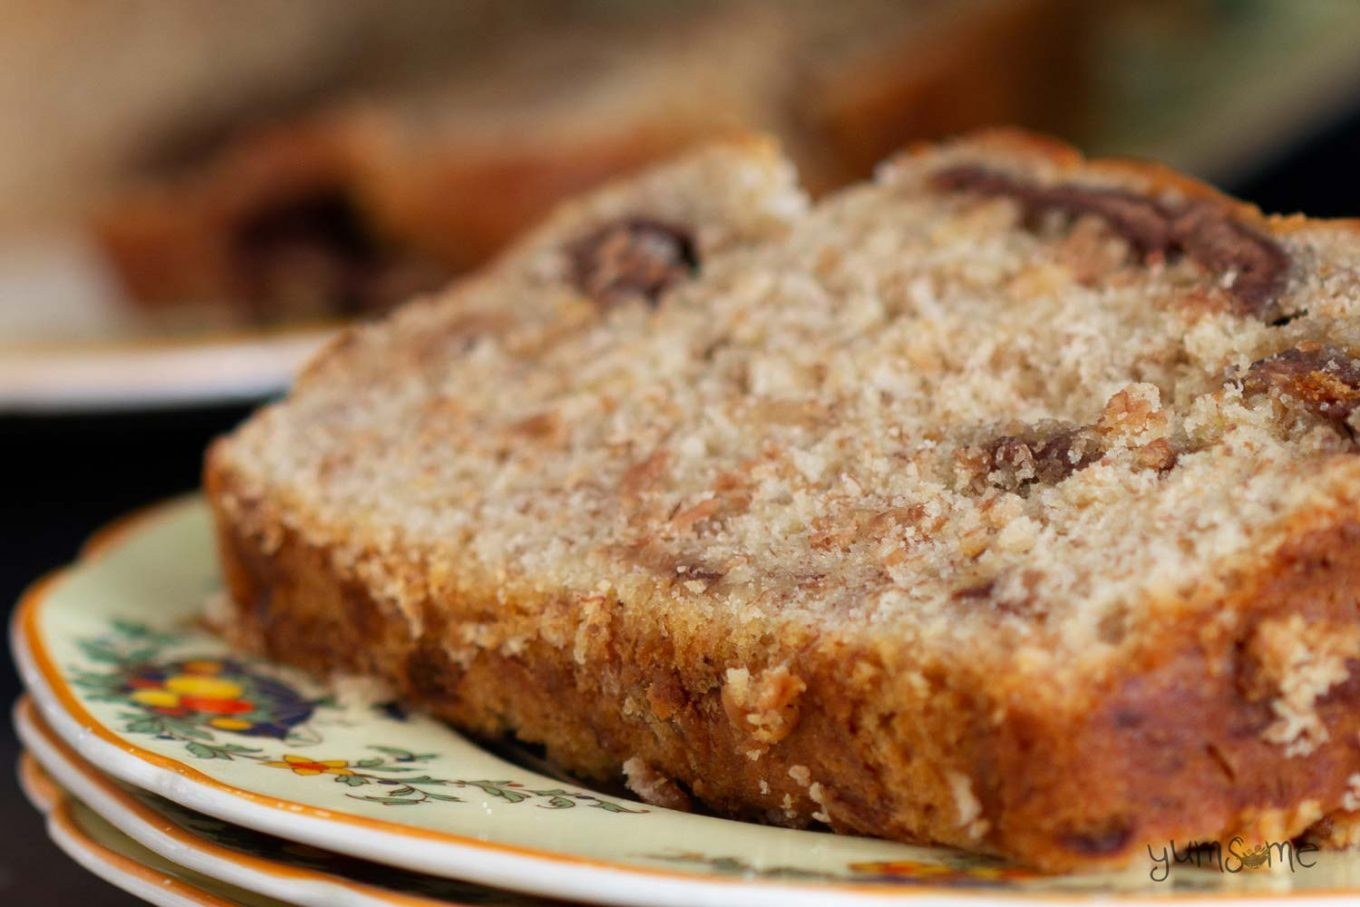 A closeup shot of a slice of chocolate chip banana bread on a yellow plate.